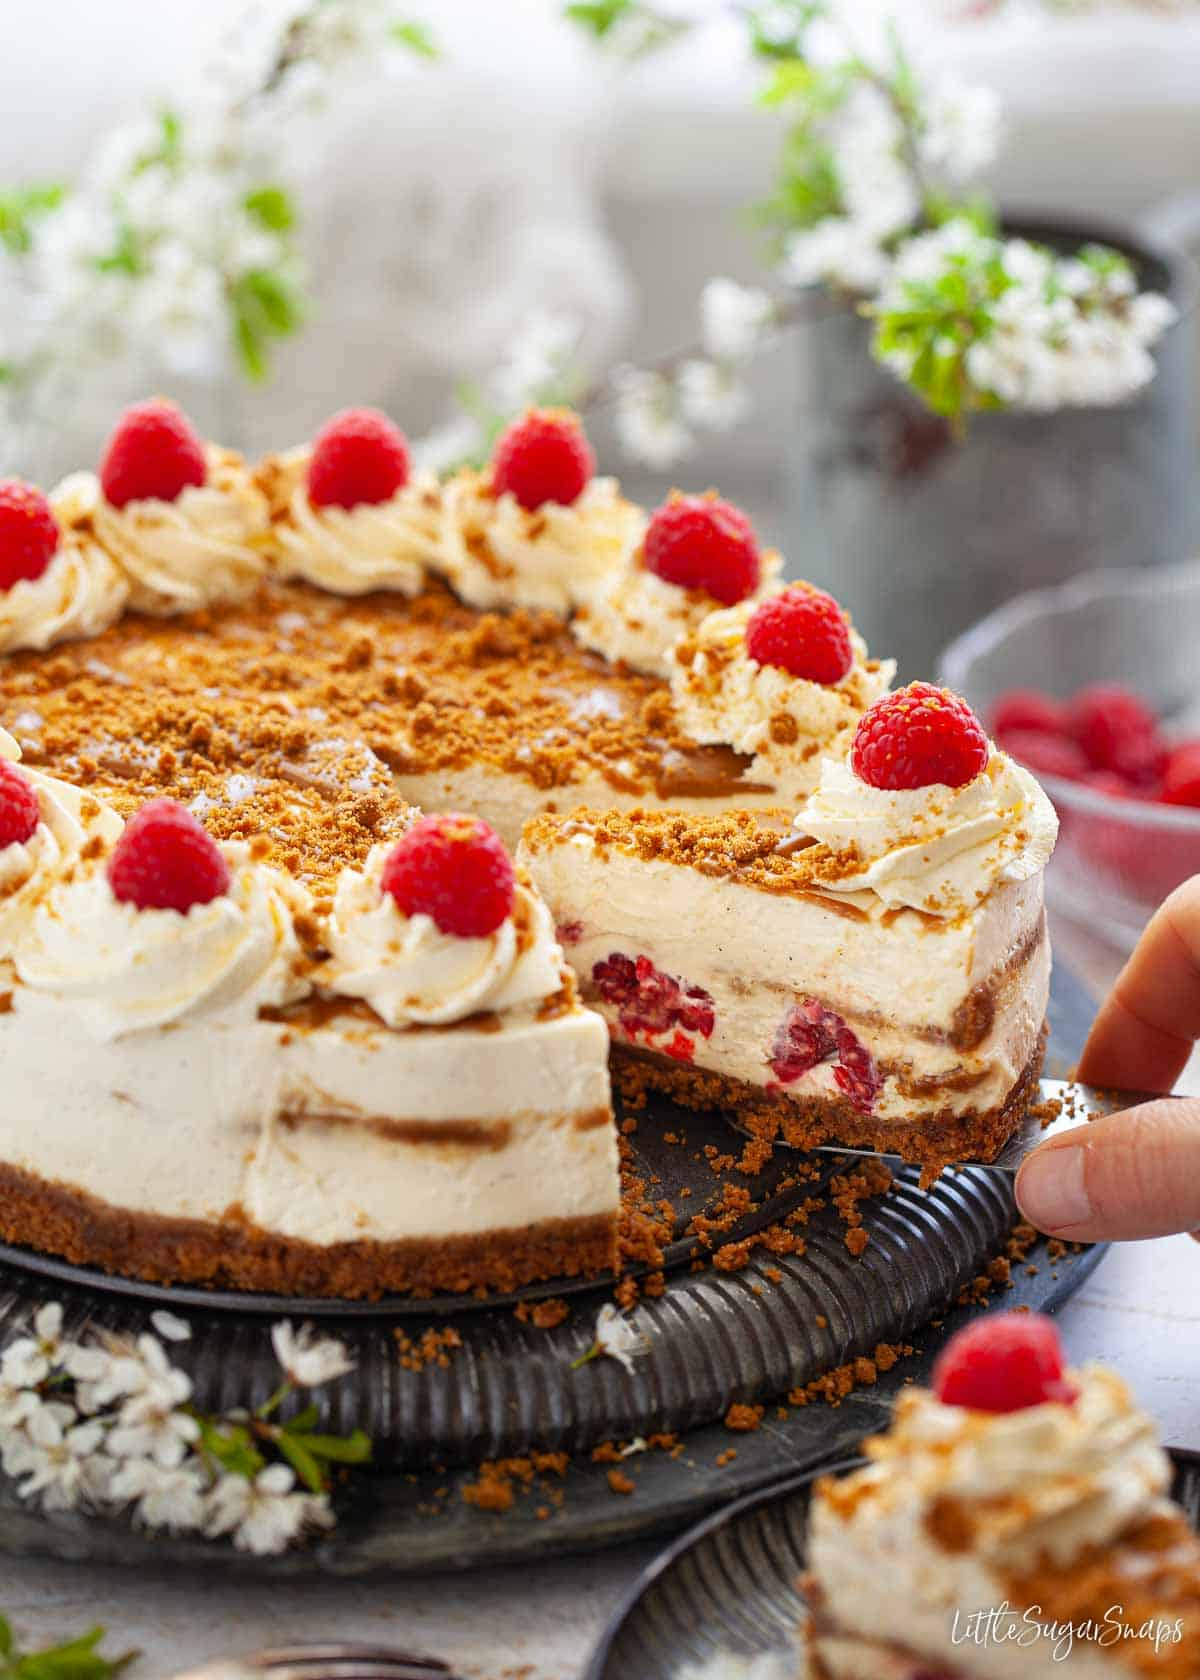 Person serving a slice of biscoff cheesecake with rasberries